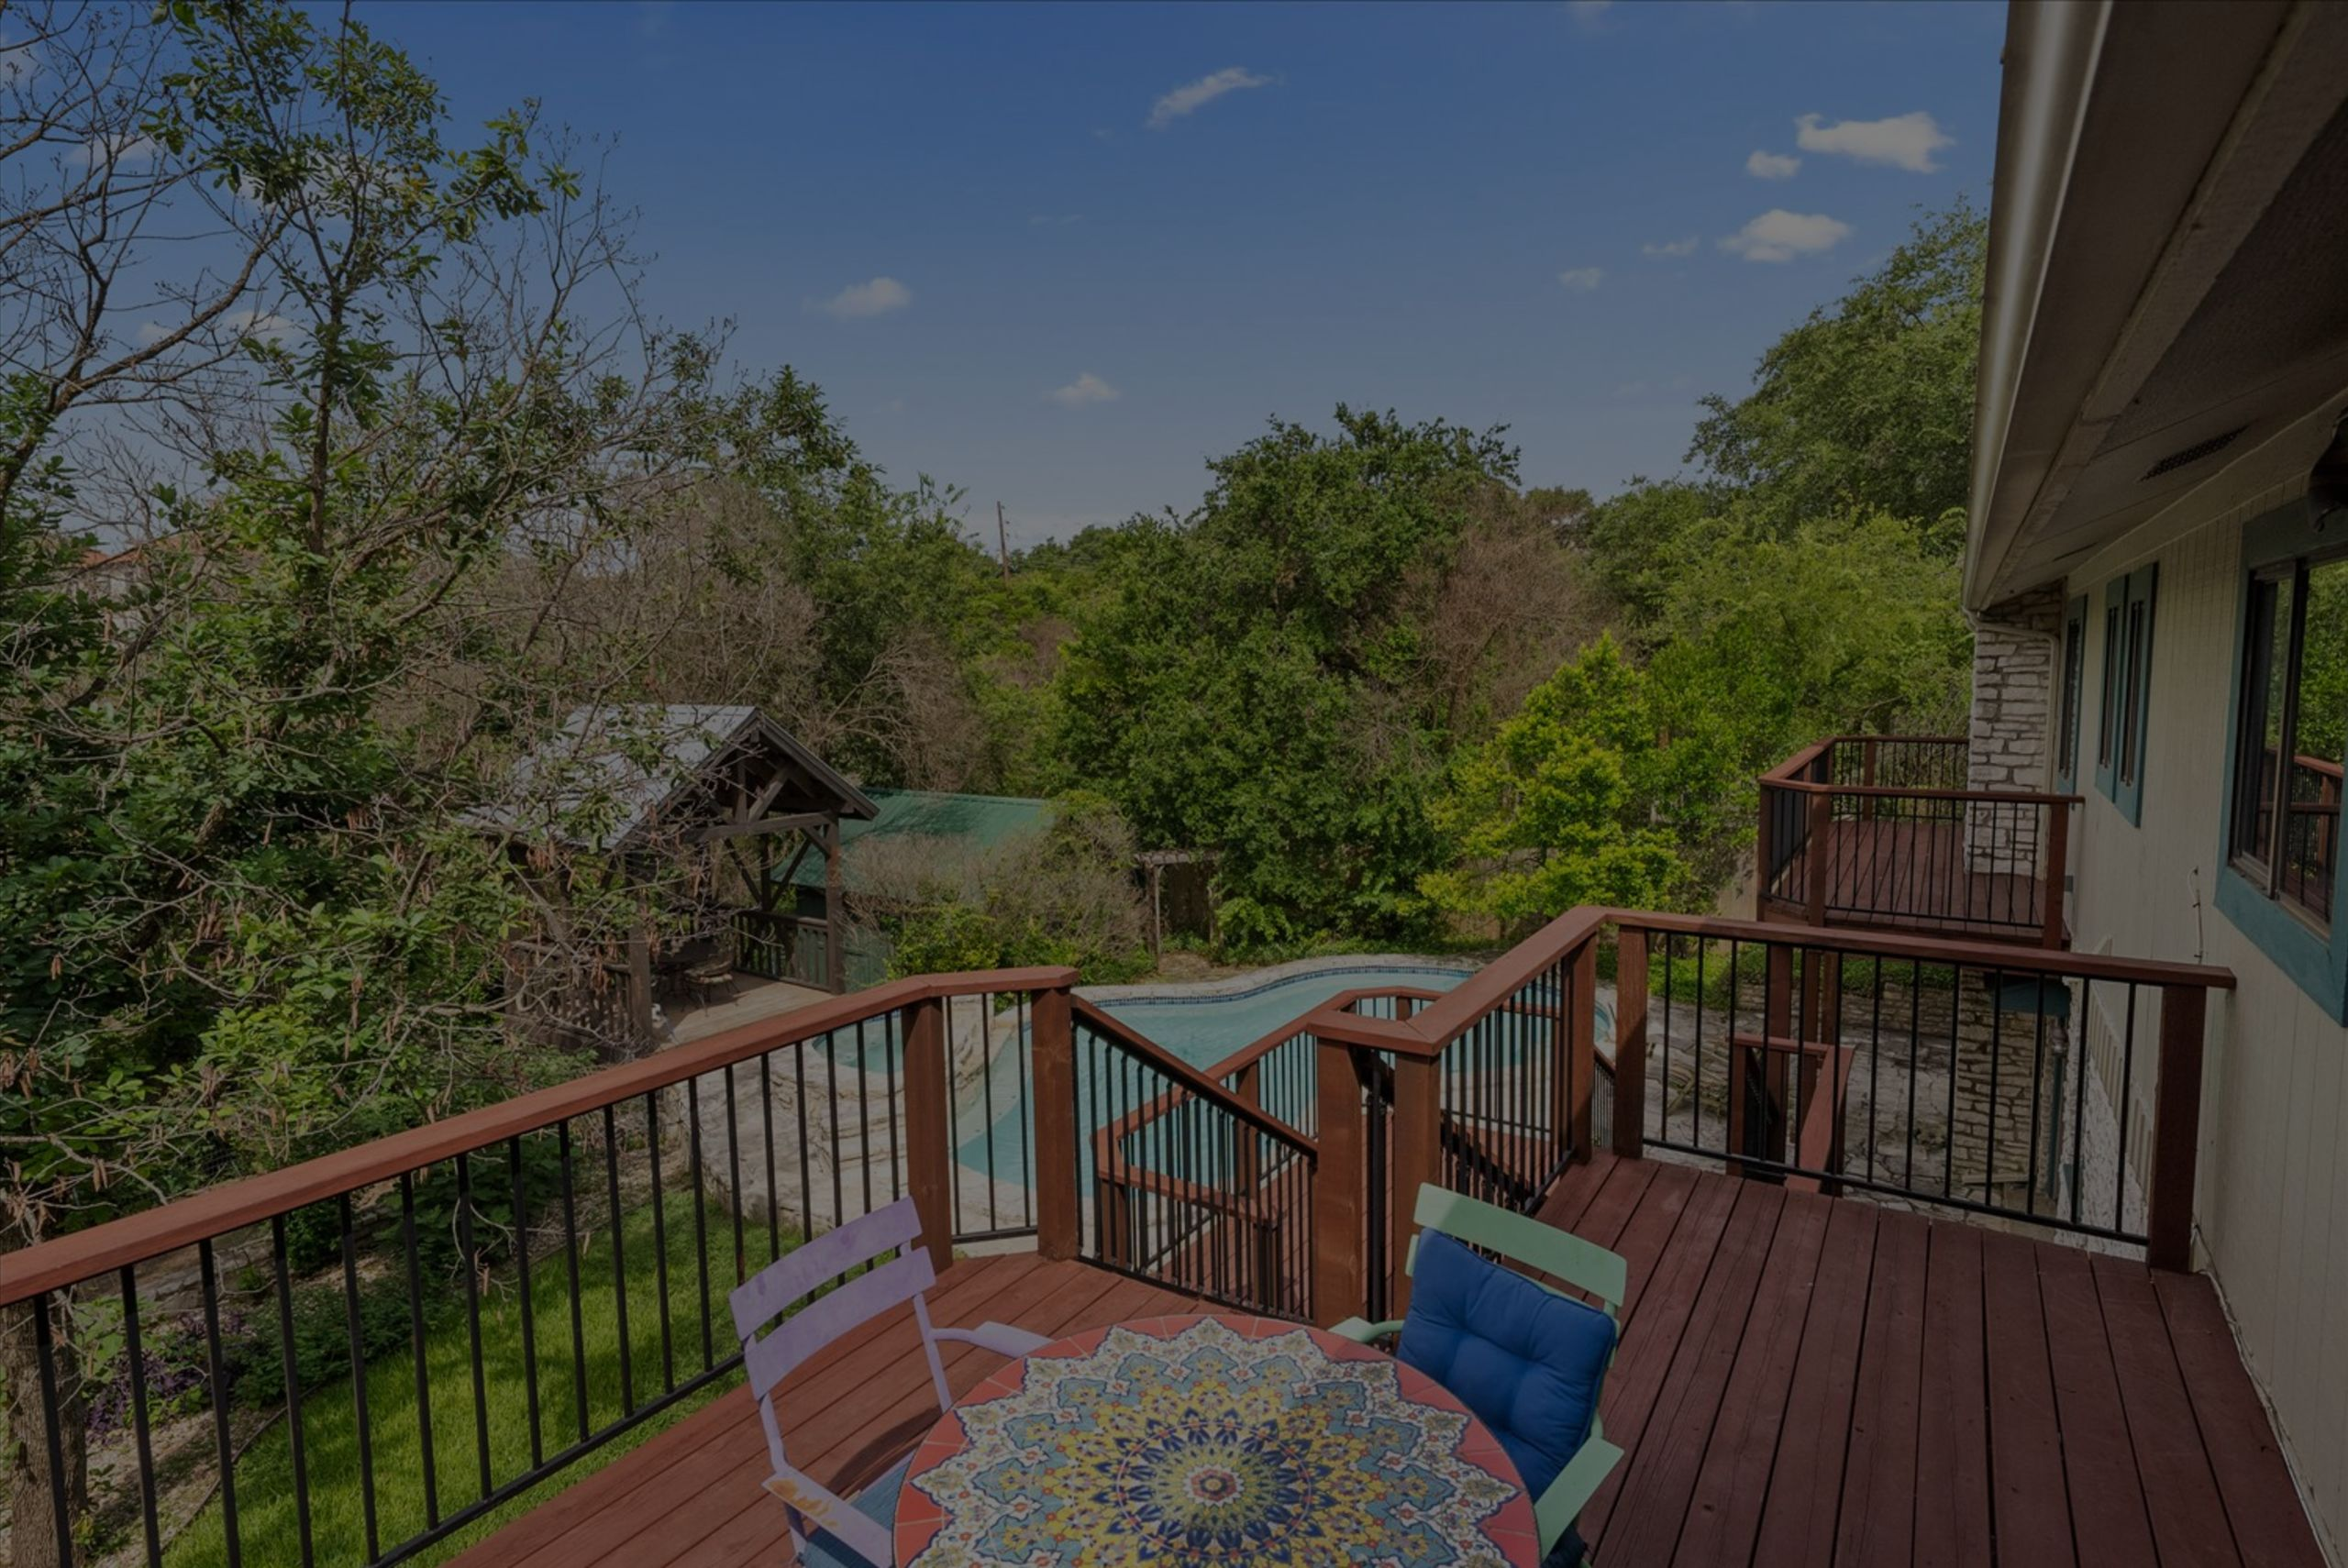 Experience Hill Country days and nights in a private, suburban setting.